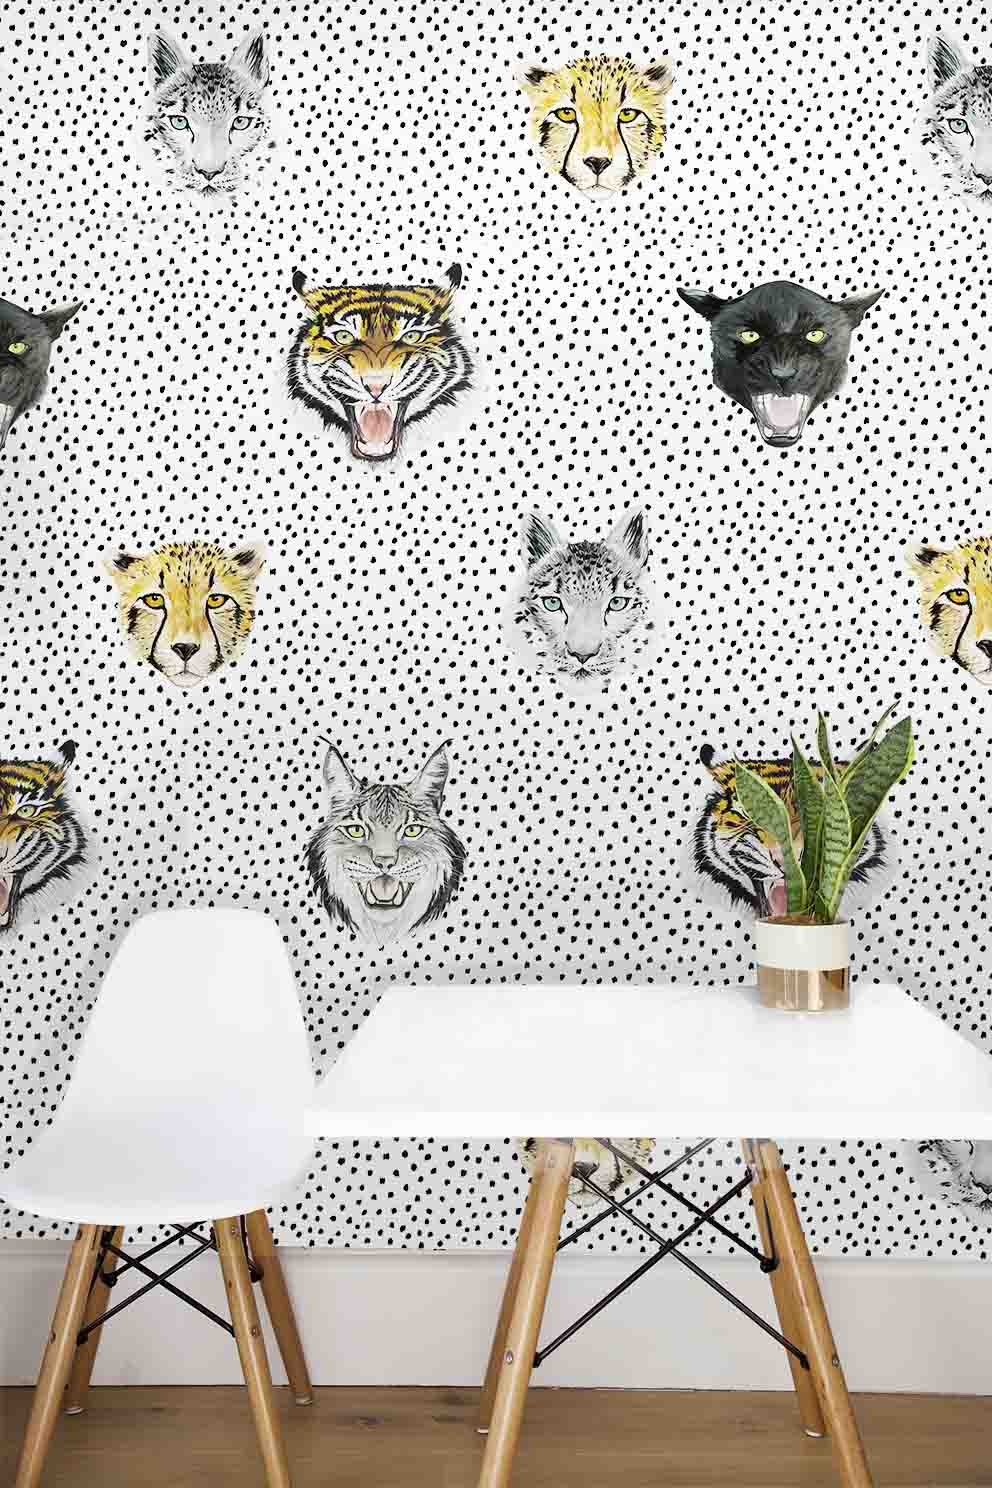 This wallpaper is unisex, it's so cool and modern, tigers, jaguars, and snow leopards are roaring on a monochrome base. Perfect for a kids bedroom or nursery.